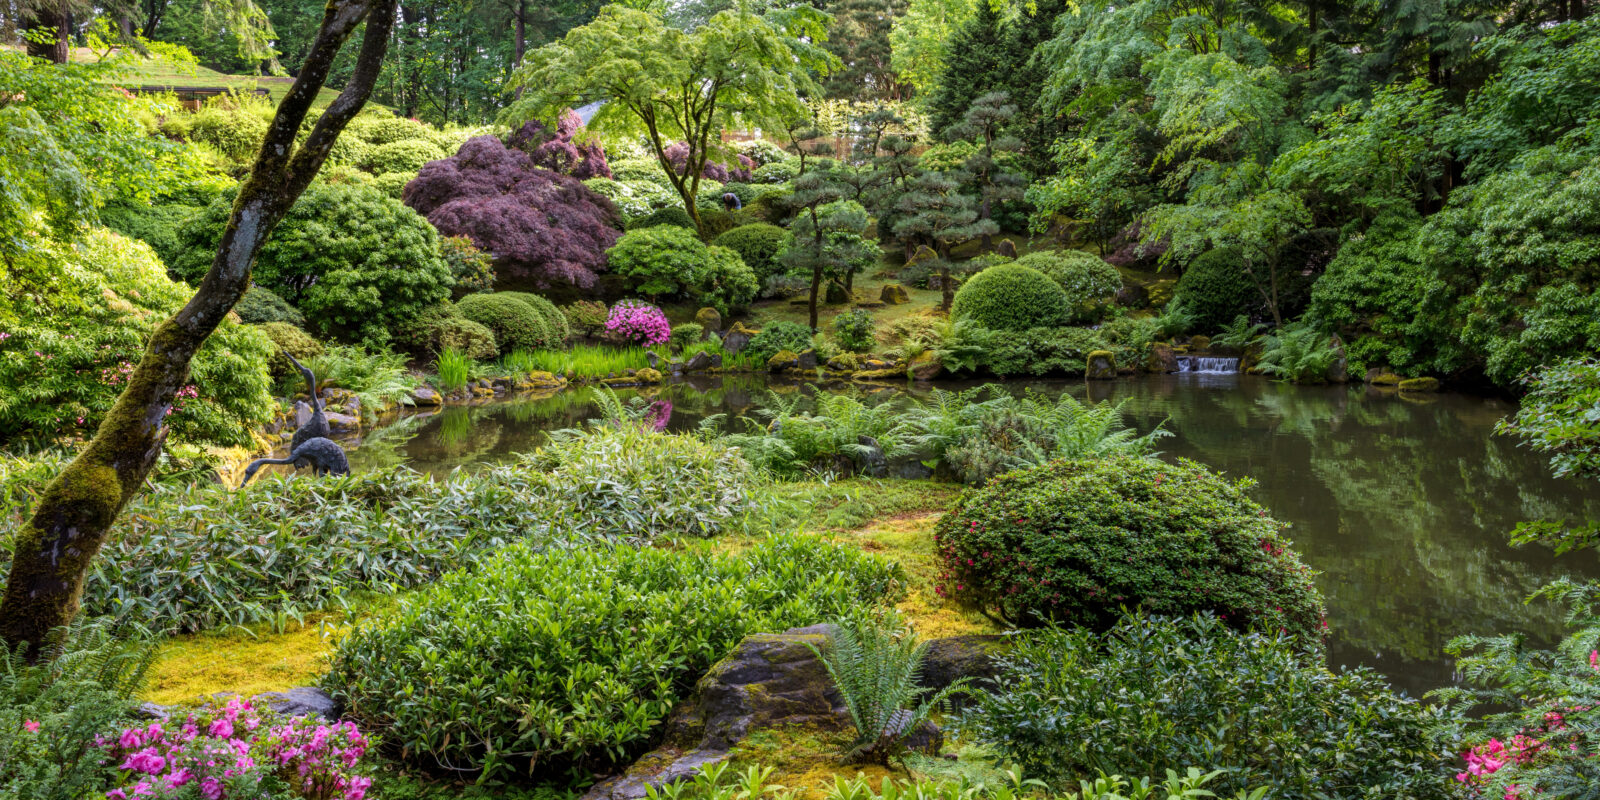 Late Spring Early Summer by Mike Centioli - 2017-05-31 - Portland Japanese Garden, May 2017-39